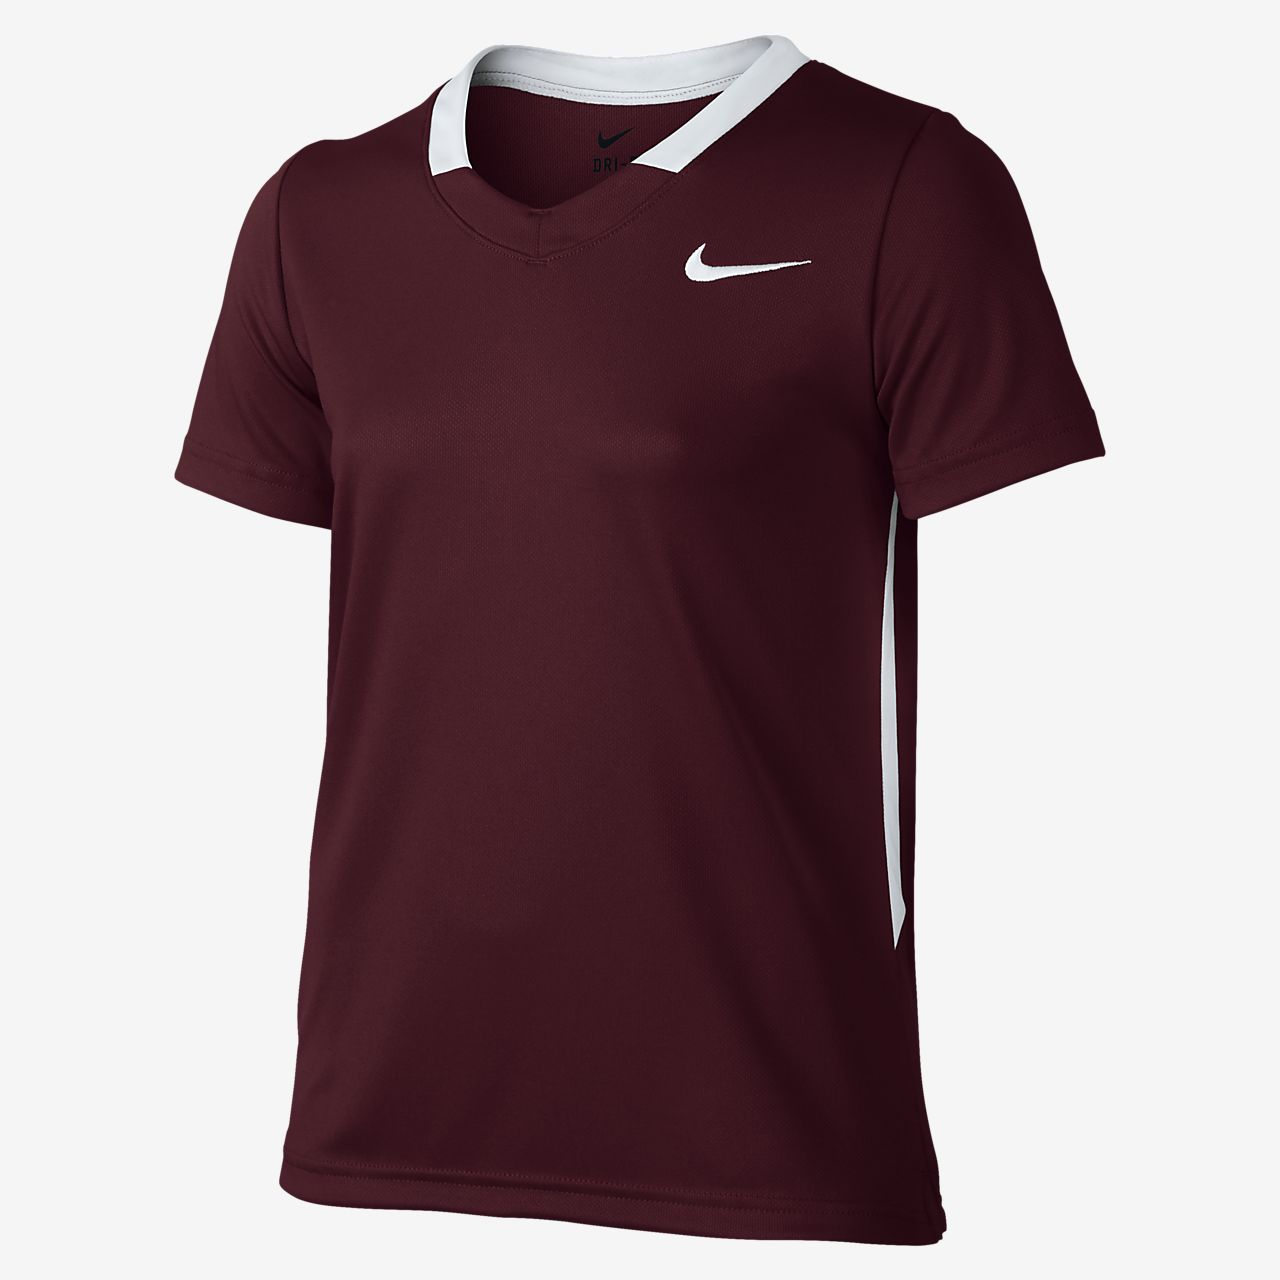 Nike Womens Lacrosse Jersey - Nike Face-Off Stock Team Scarlet/Team White/Team White P80d3637